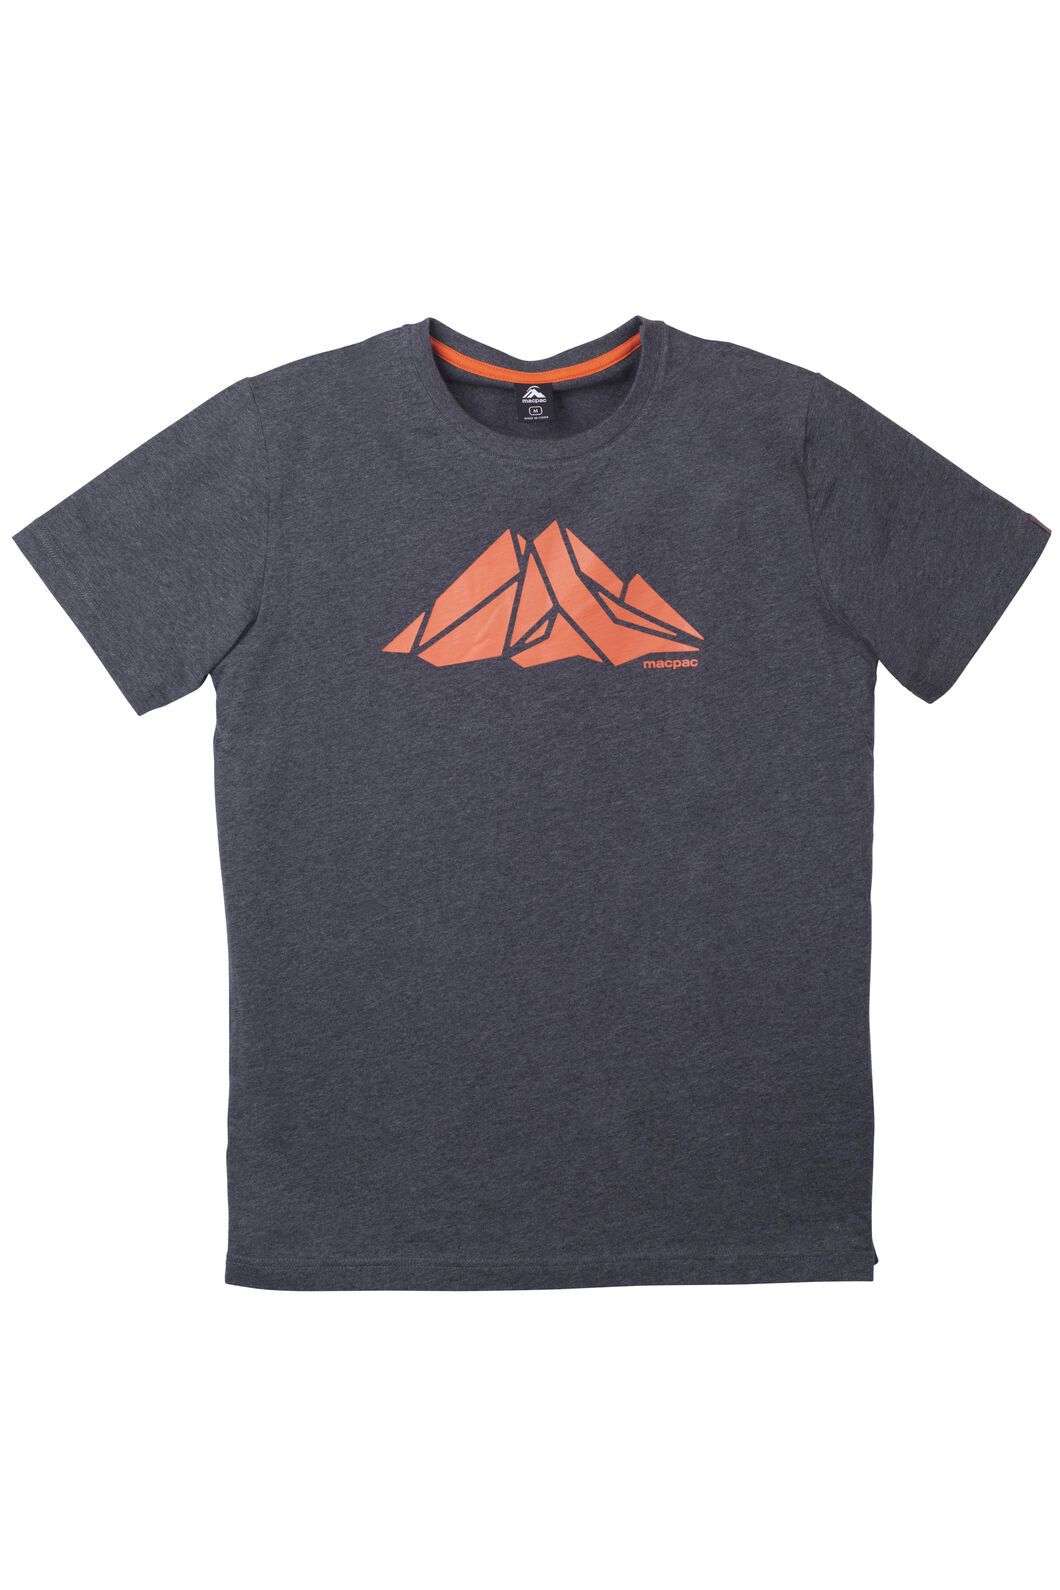 Screen Print Organic Cotton Tee - Men's, Charcoal Marle, hi-res